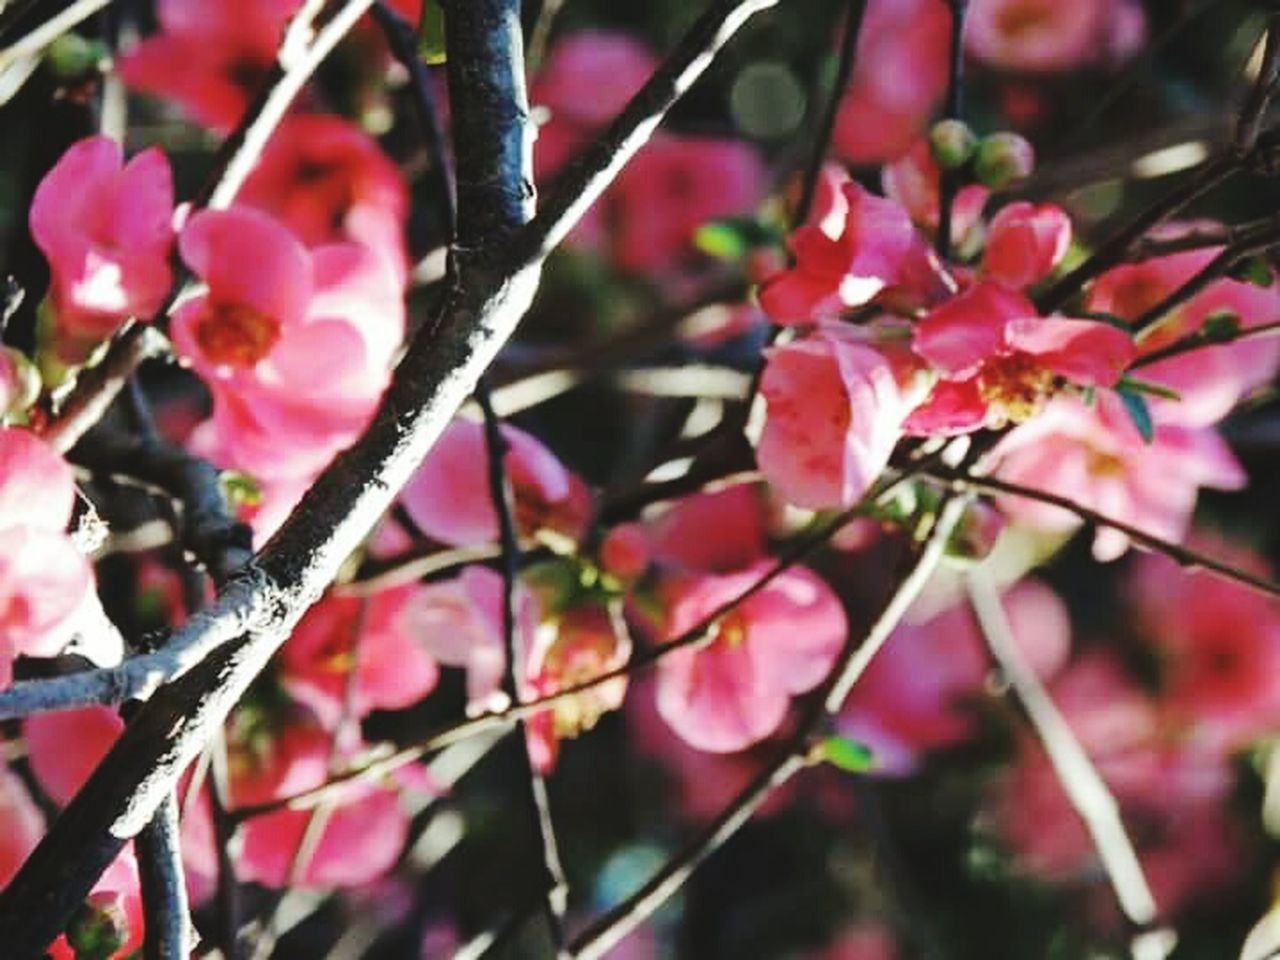 growth, beauty in nature, nature, flower, fragility, outdoors, no people, freshness, day, pink color, branch, plant, close-up, tree